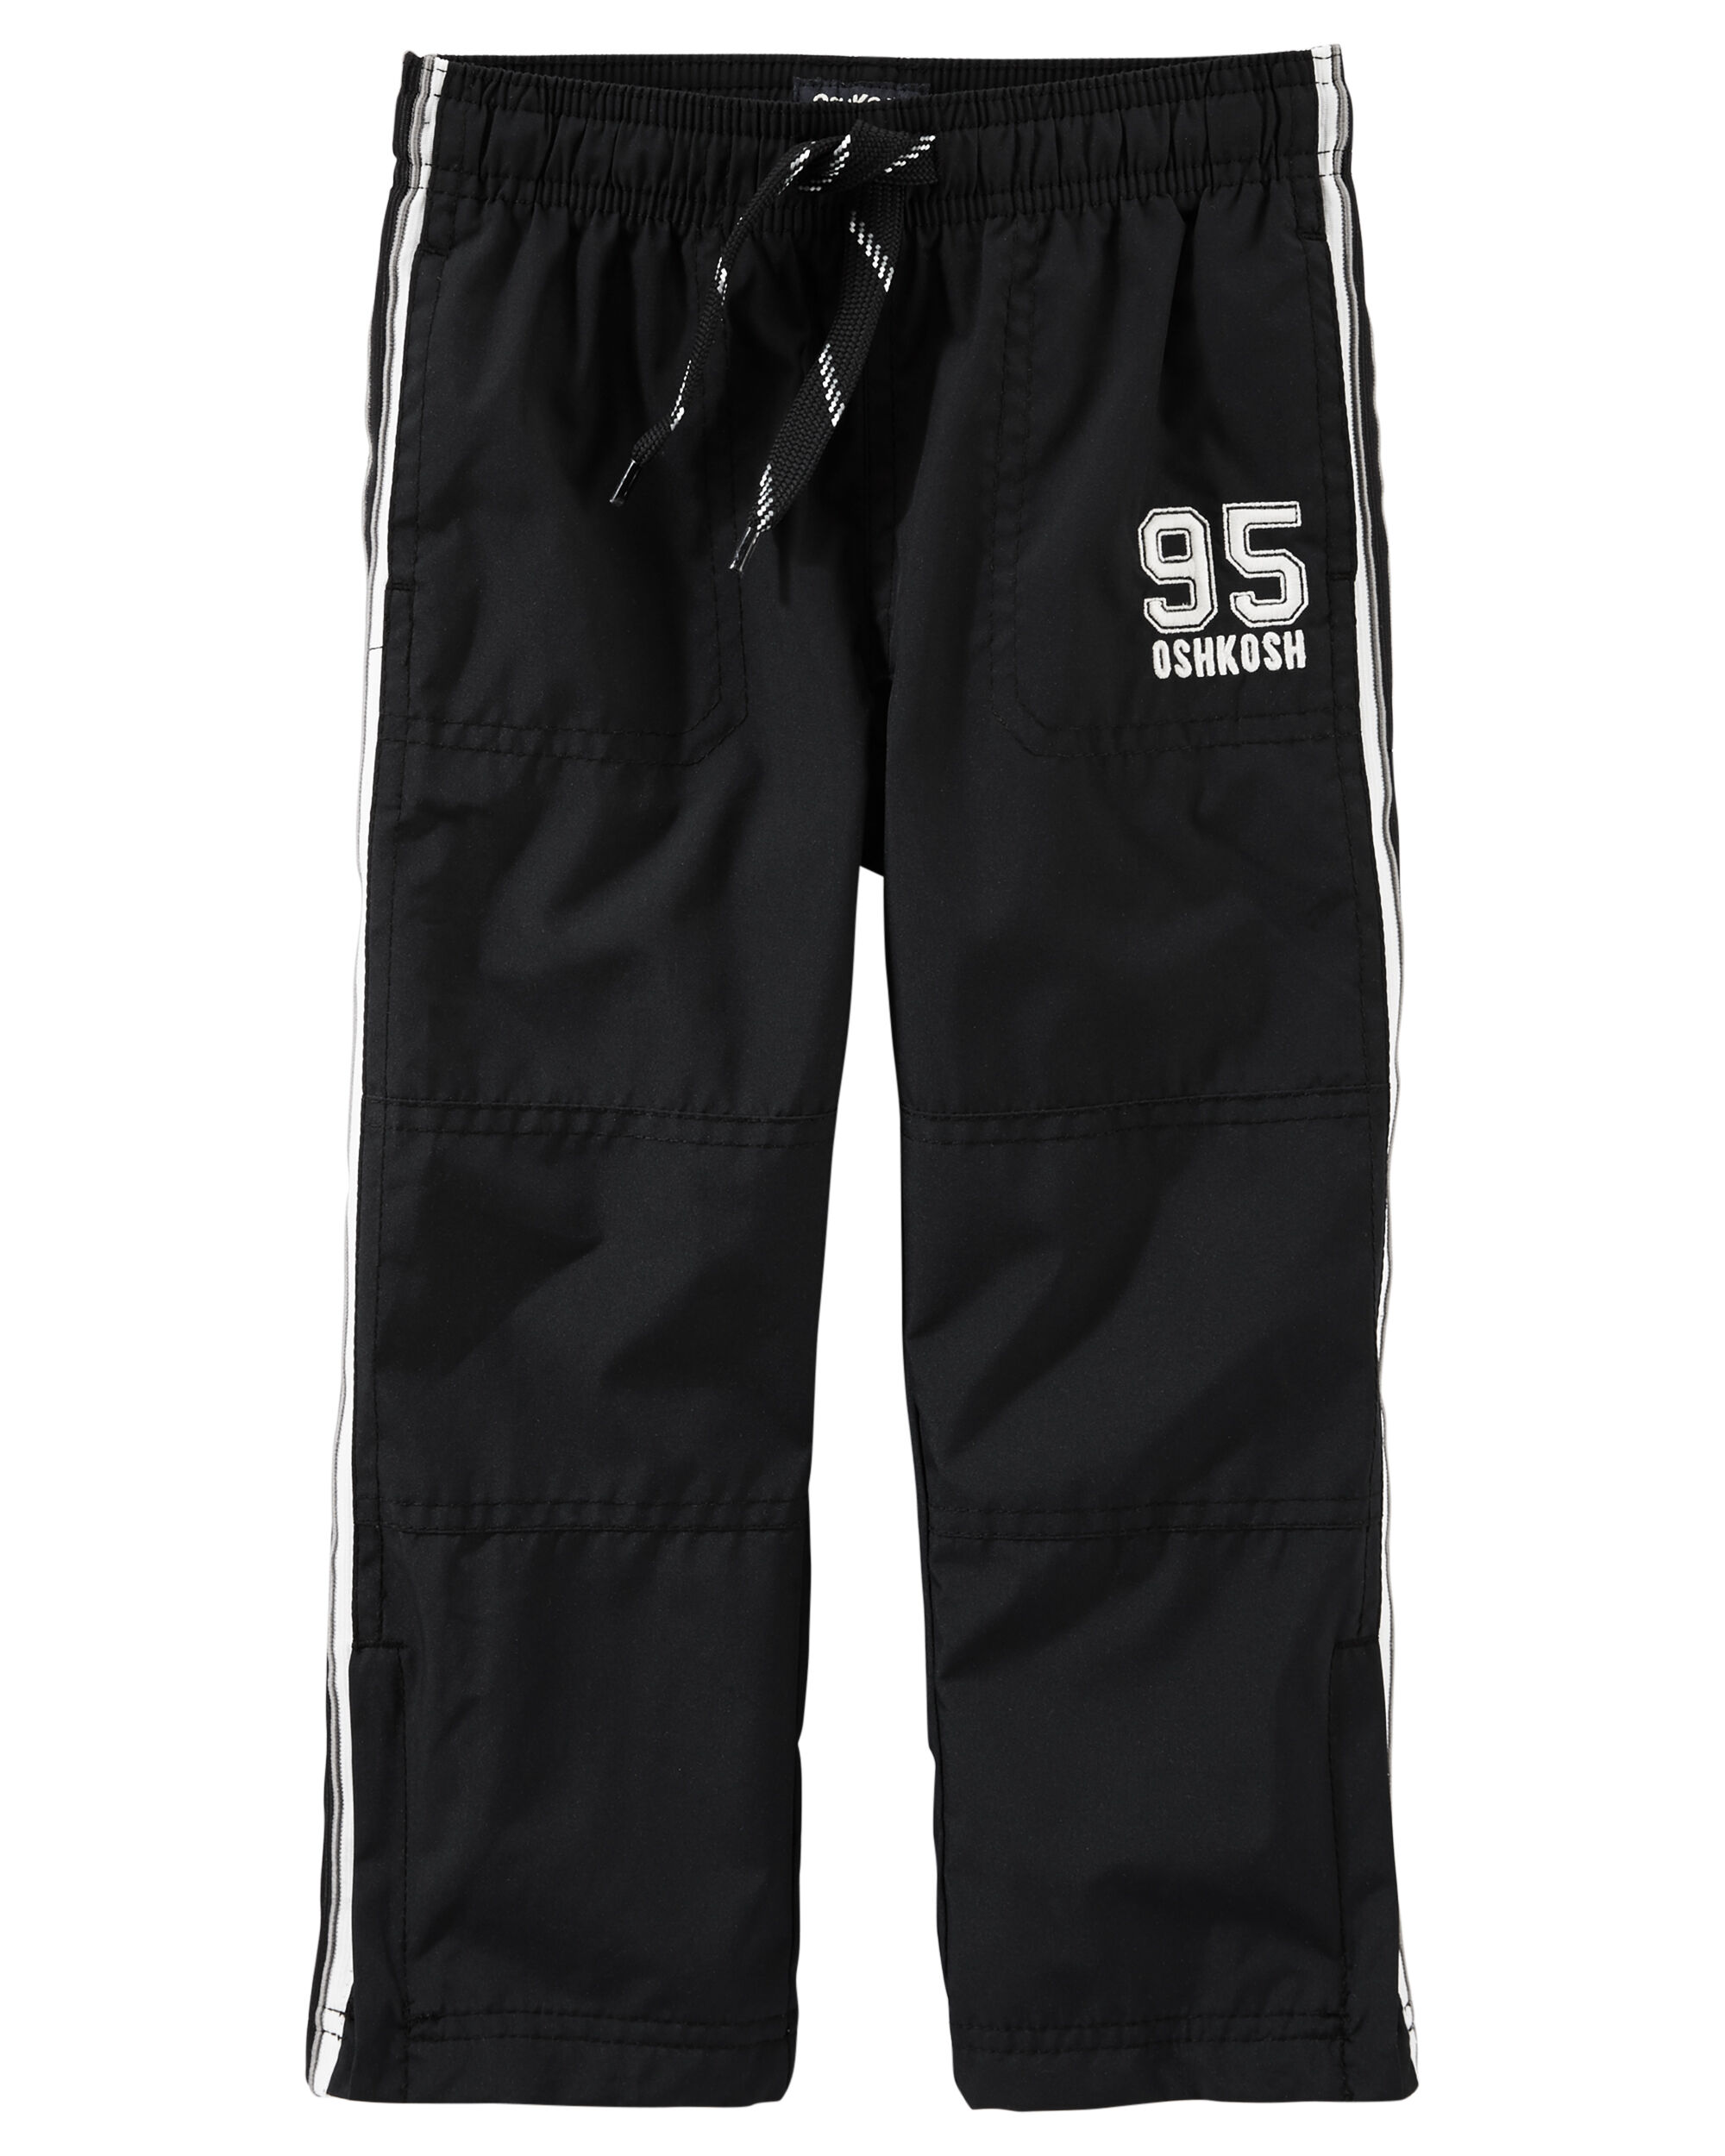 Oshkosh Jersey Lined Trousers 12m Clothing, Shoes & Accessories